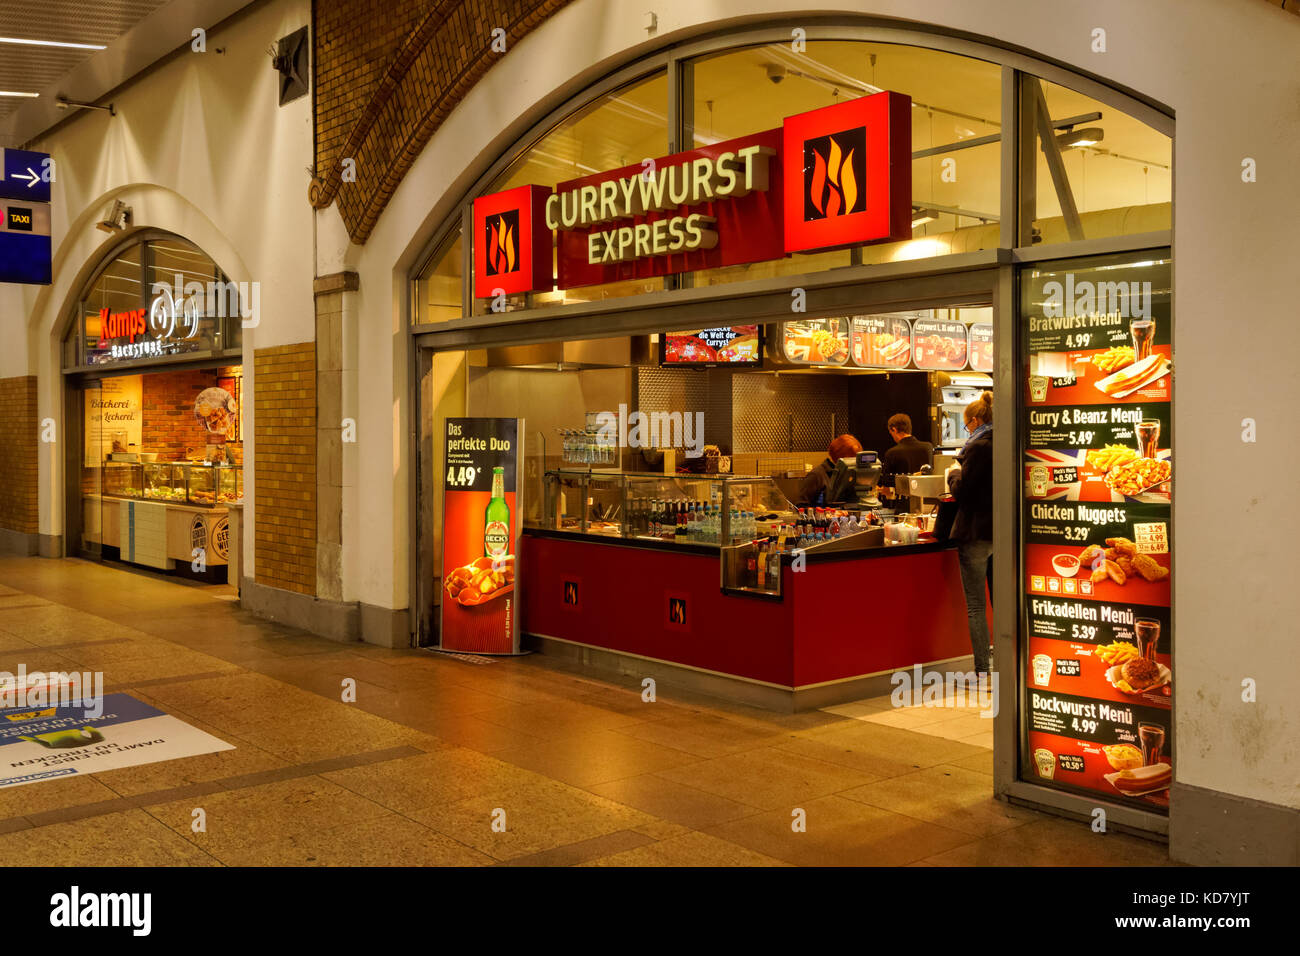 8eada4e360c Currywurst Express takeaway at Alexanderplatz station in Berlin, Germany -  Stock Image